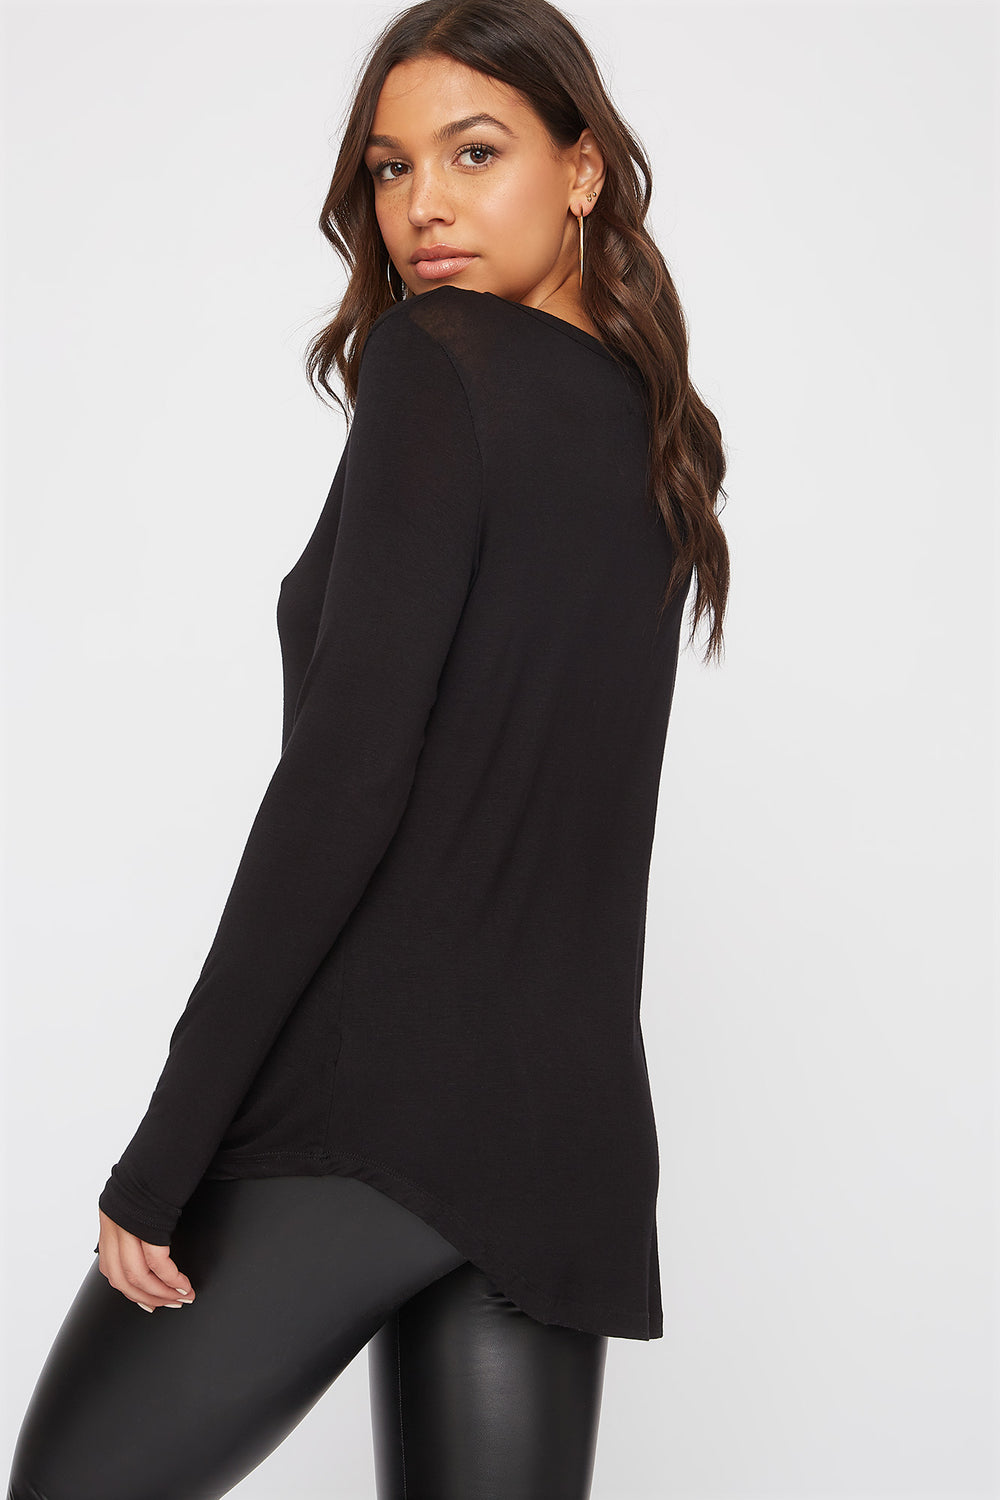 Top de Cuello en V Manga Larga Negro